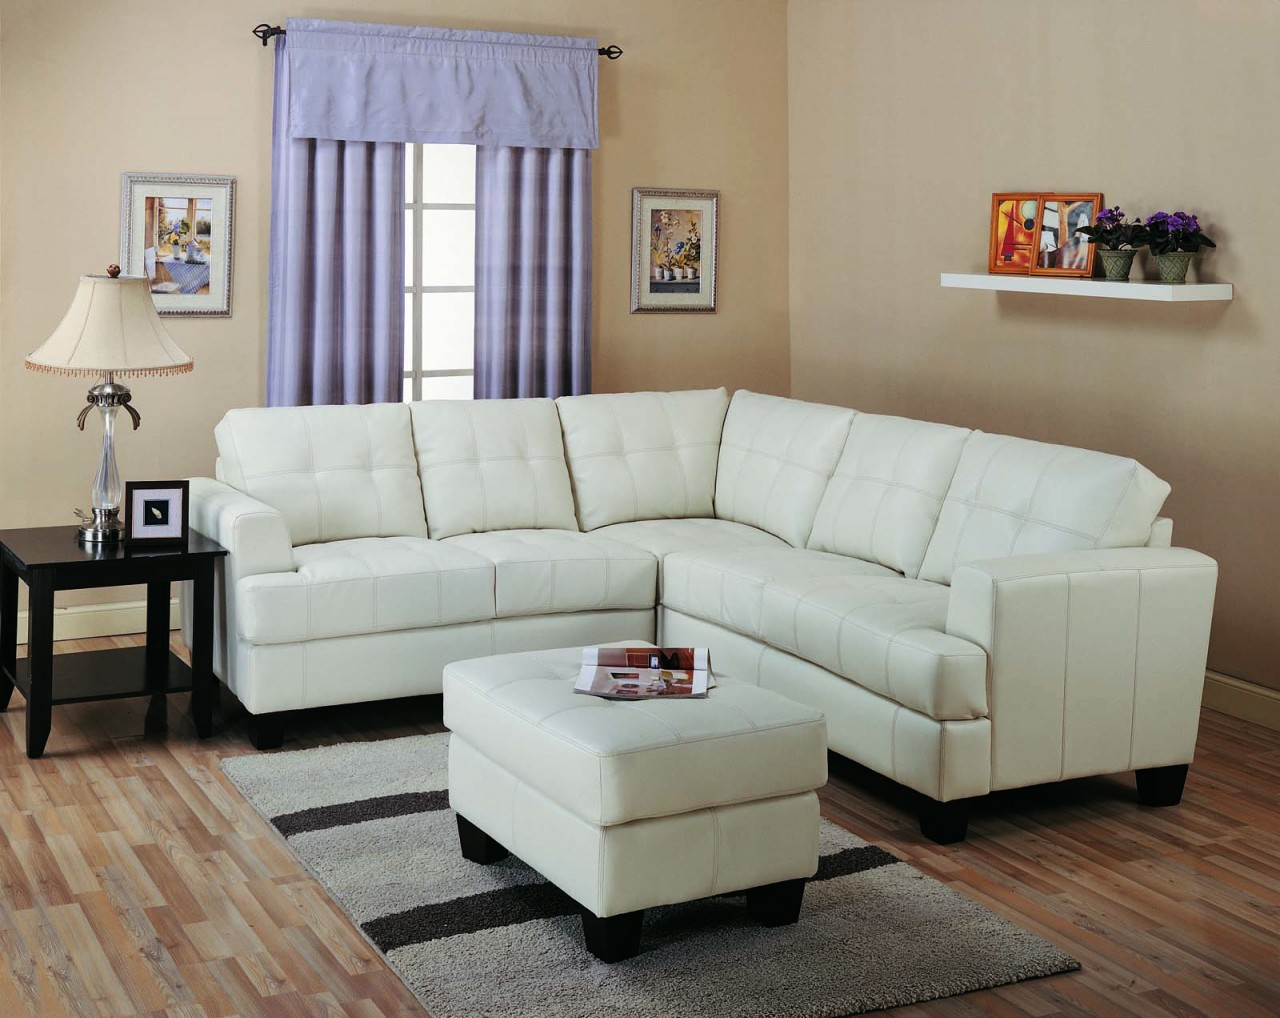 Living Couch Types Of Best Small Sectional Couches For Small Living